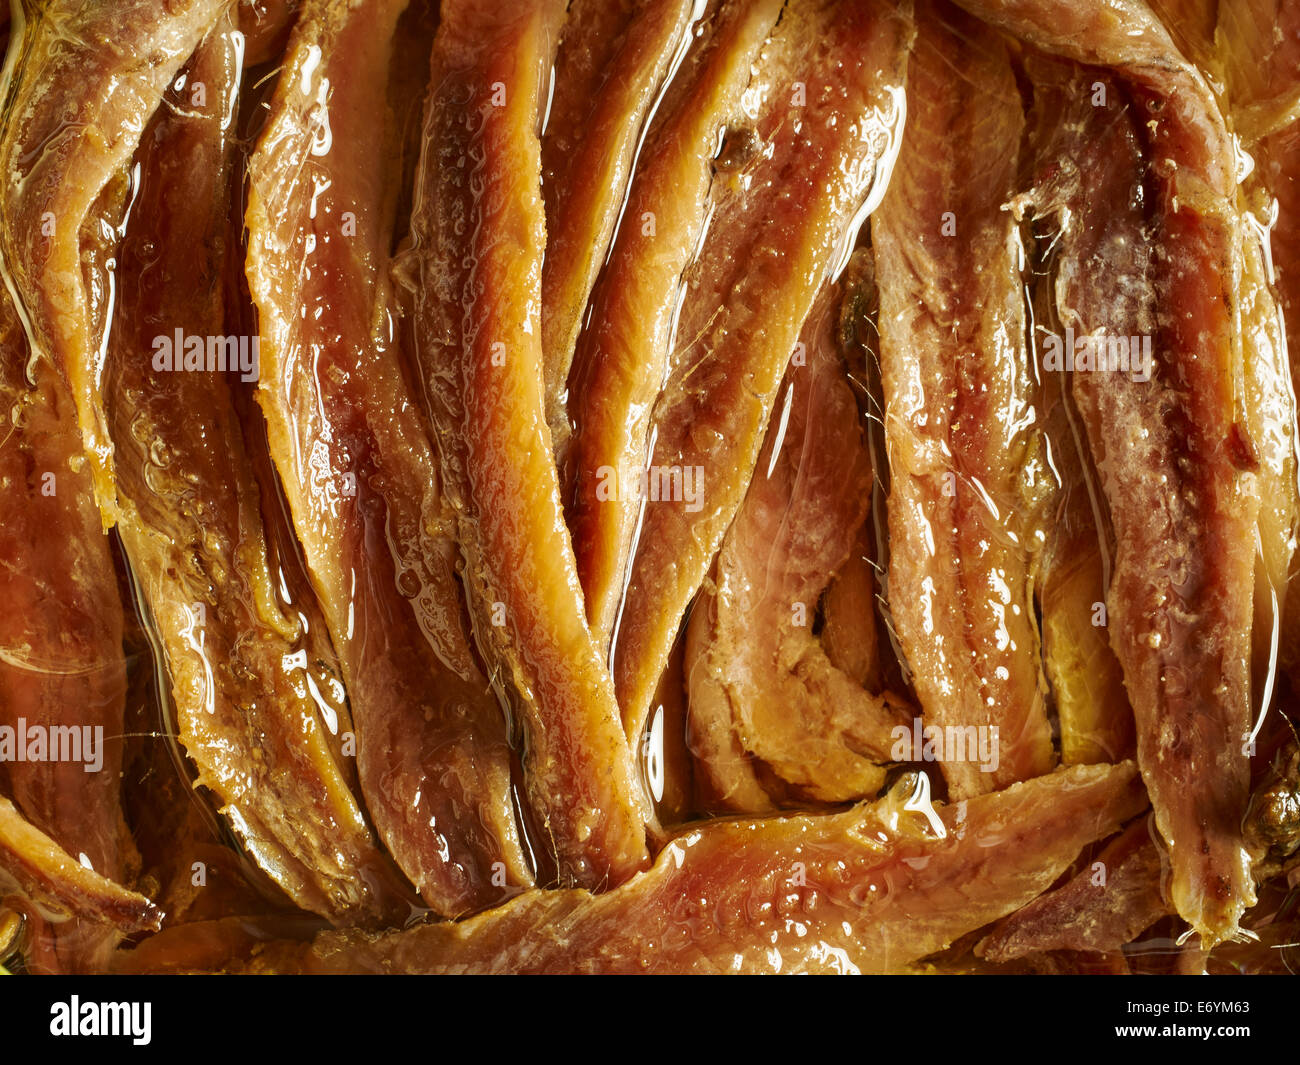 Anchovy fillets packed in olive oil - Stock Image